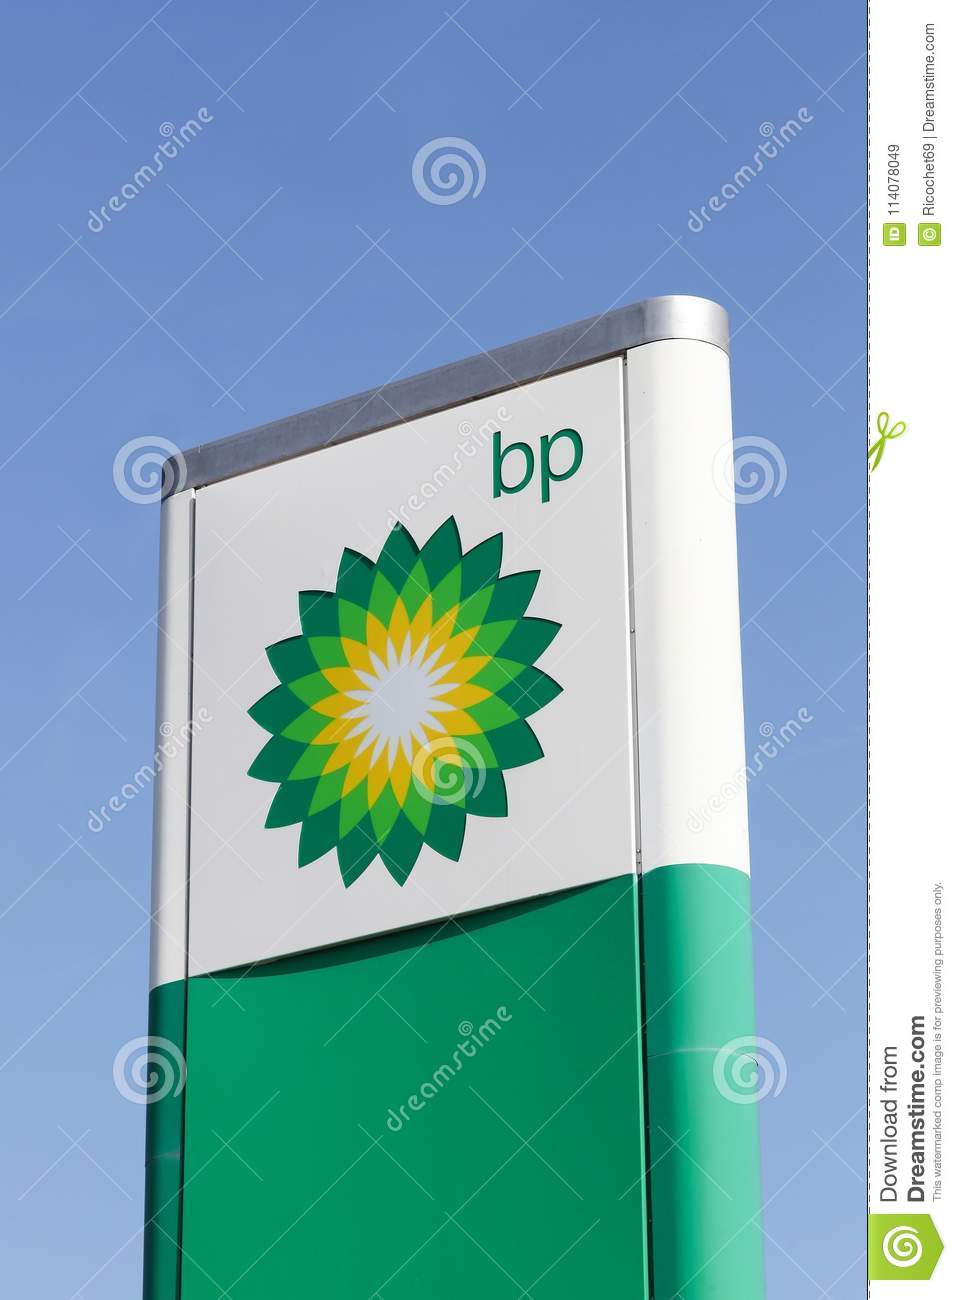 Bp Logo On A Panel Editorial Stock Image Image Of Fuel 114078049